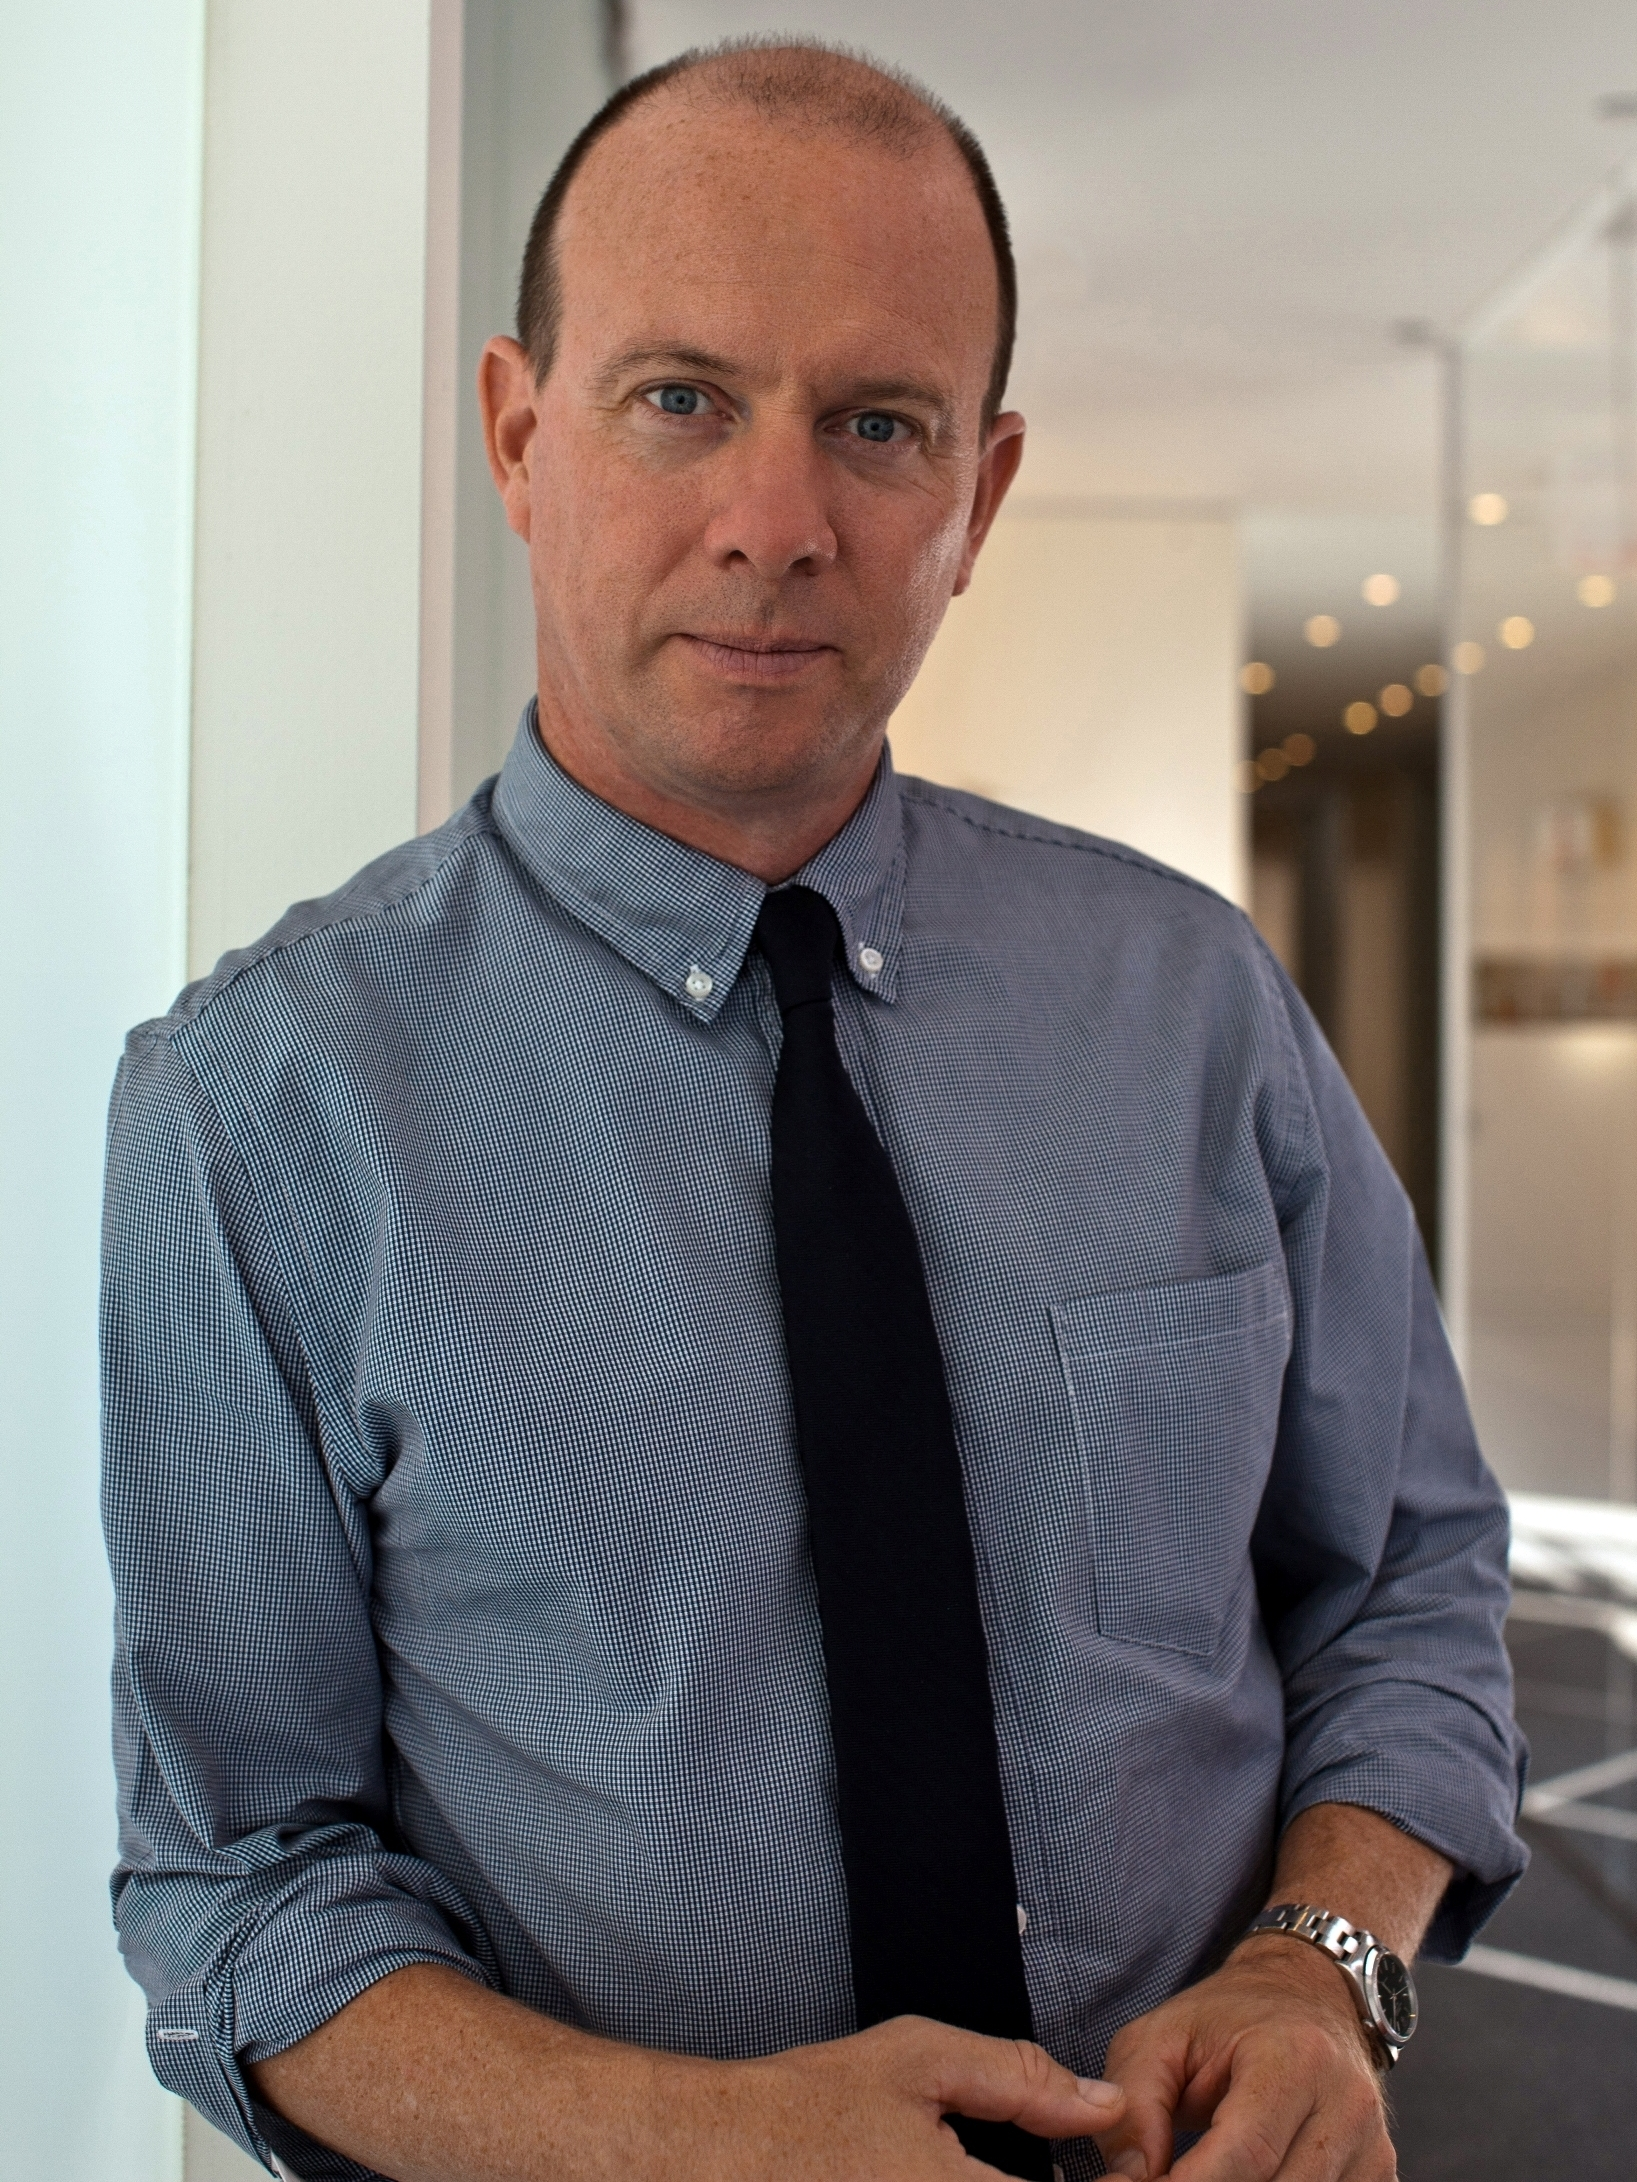 Sam Sifton is the national editor of The New York Times. Previously, he served as the newspaper's restaurant critic and culture editor.